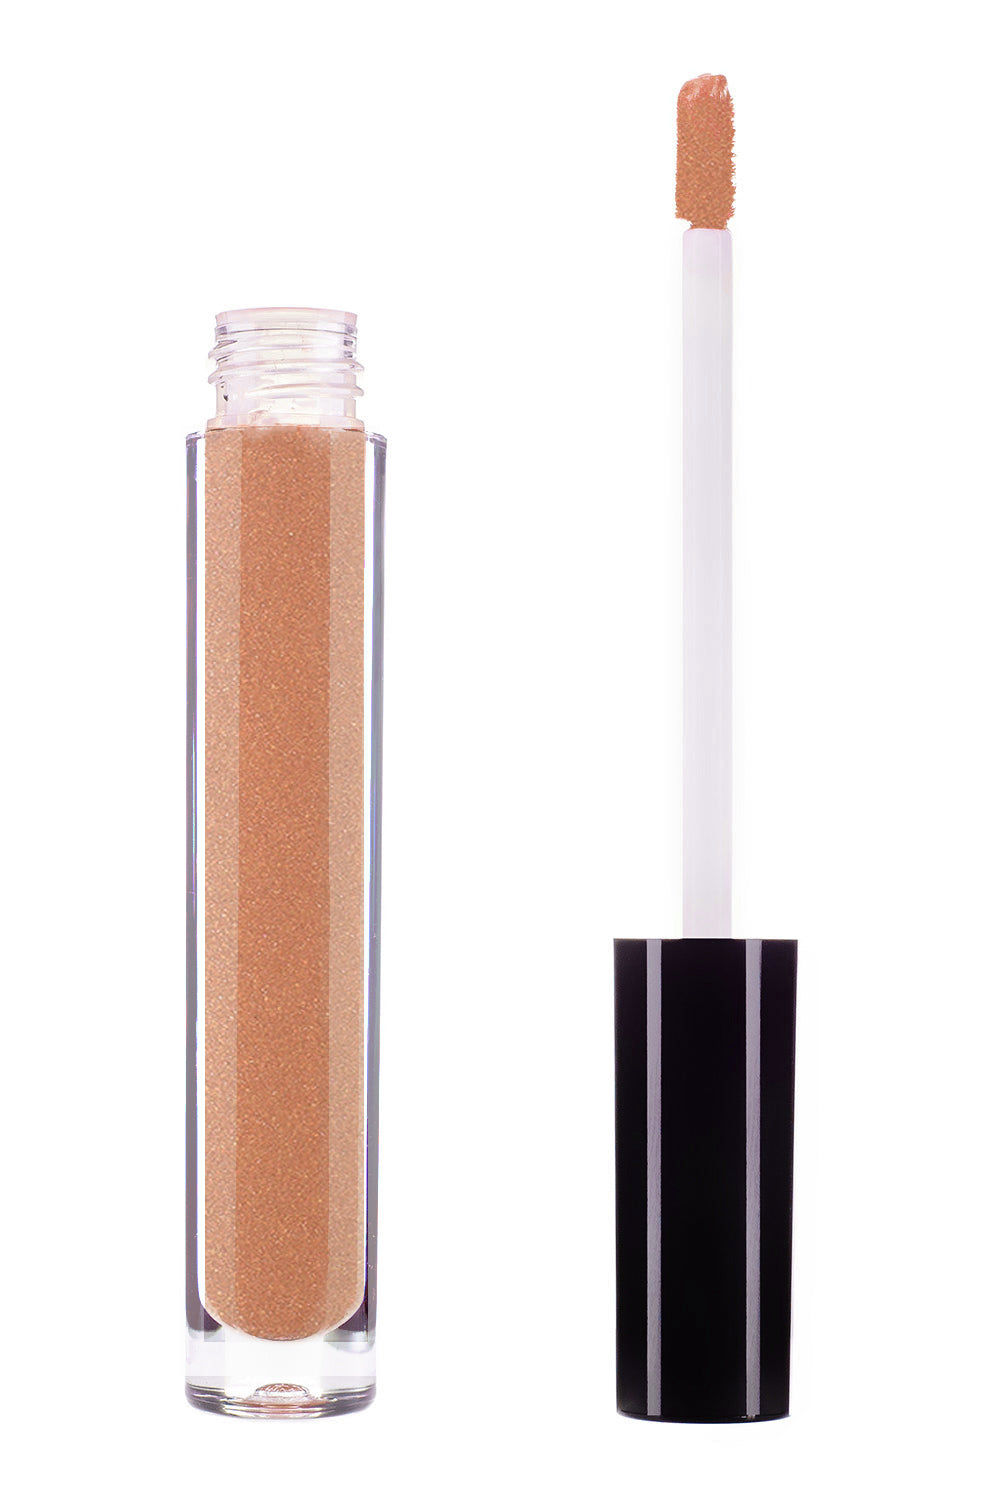 Type 3 Plumping Lip Gloss - Pure